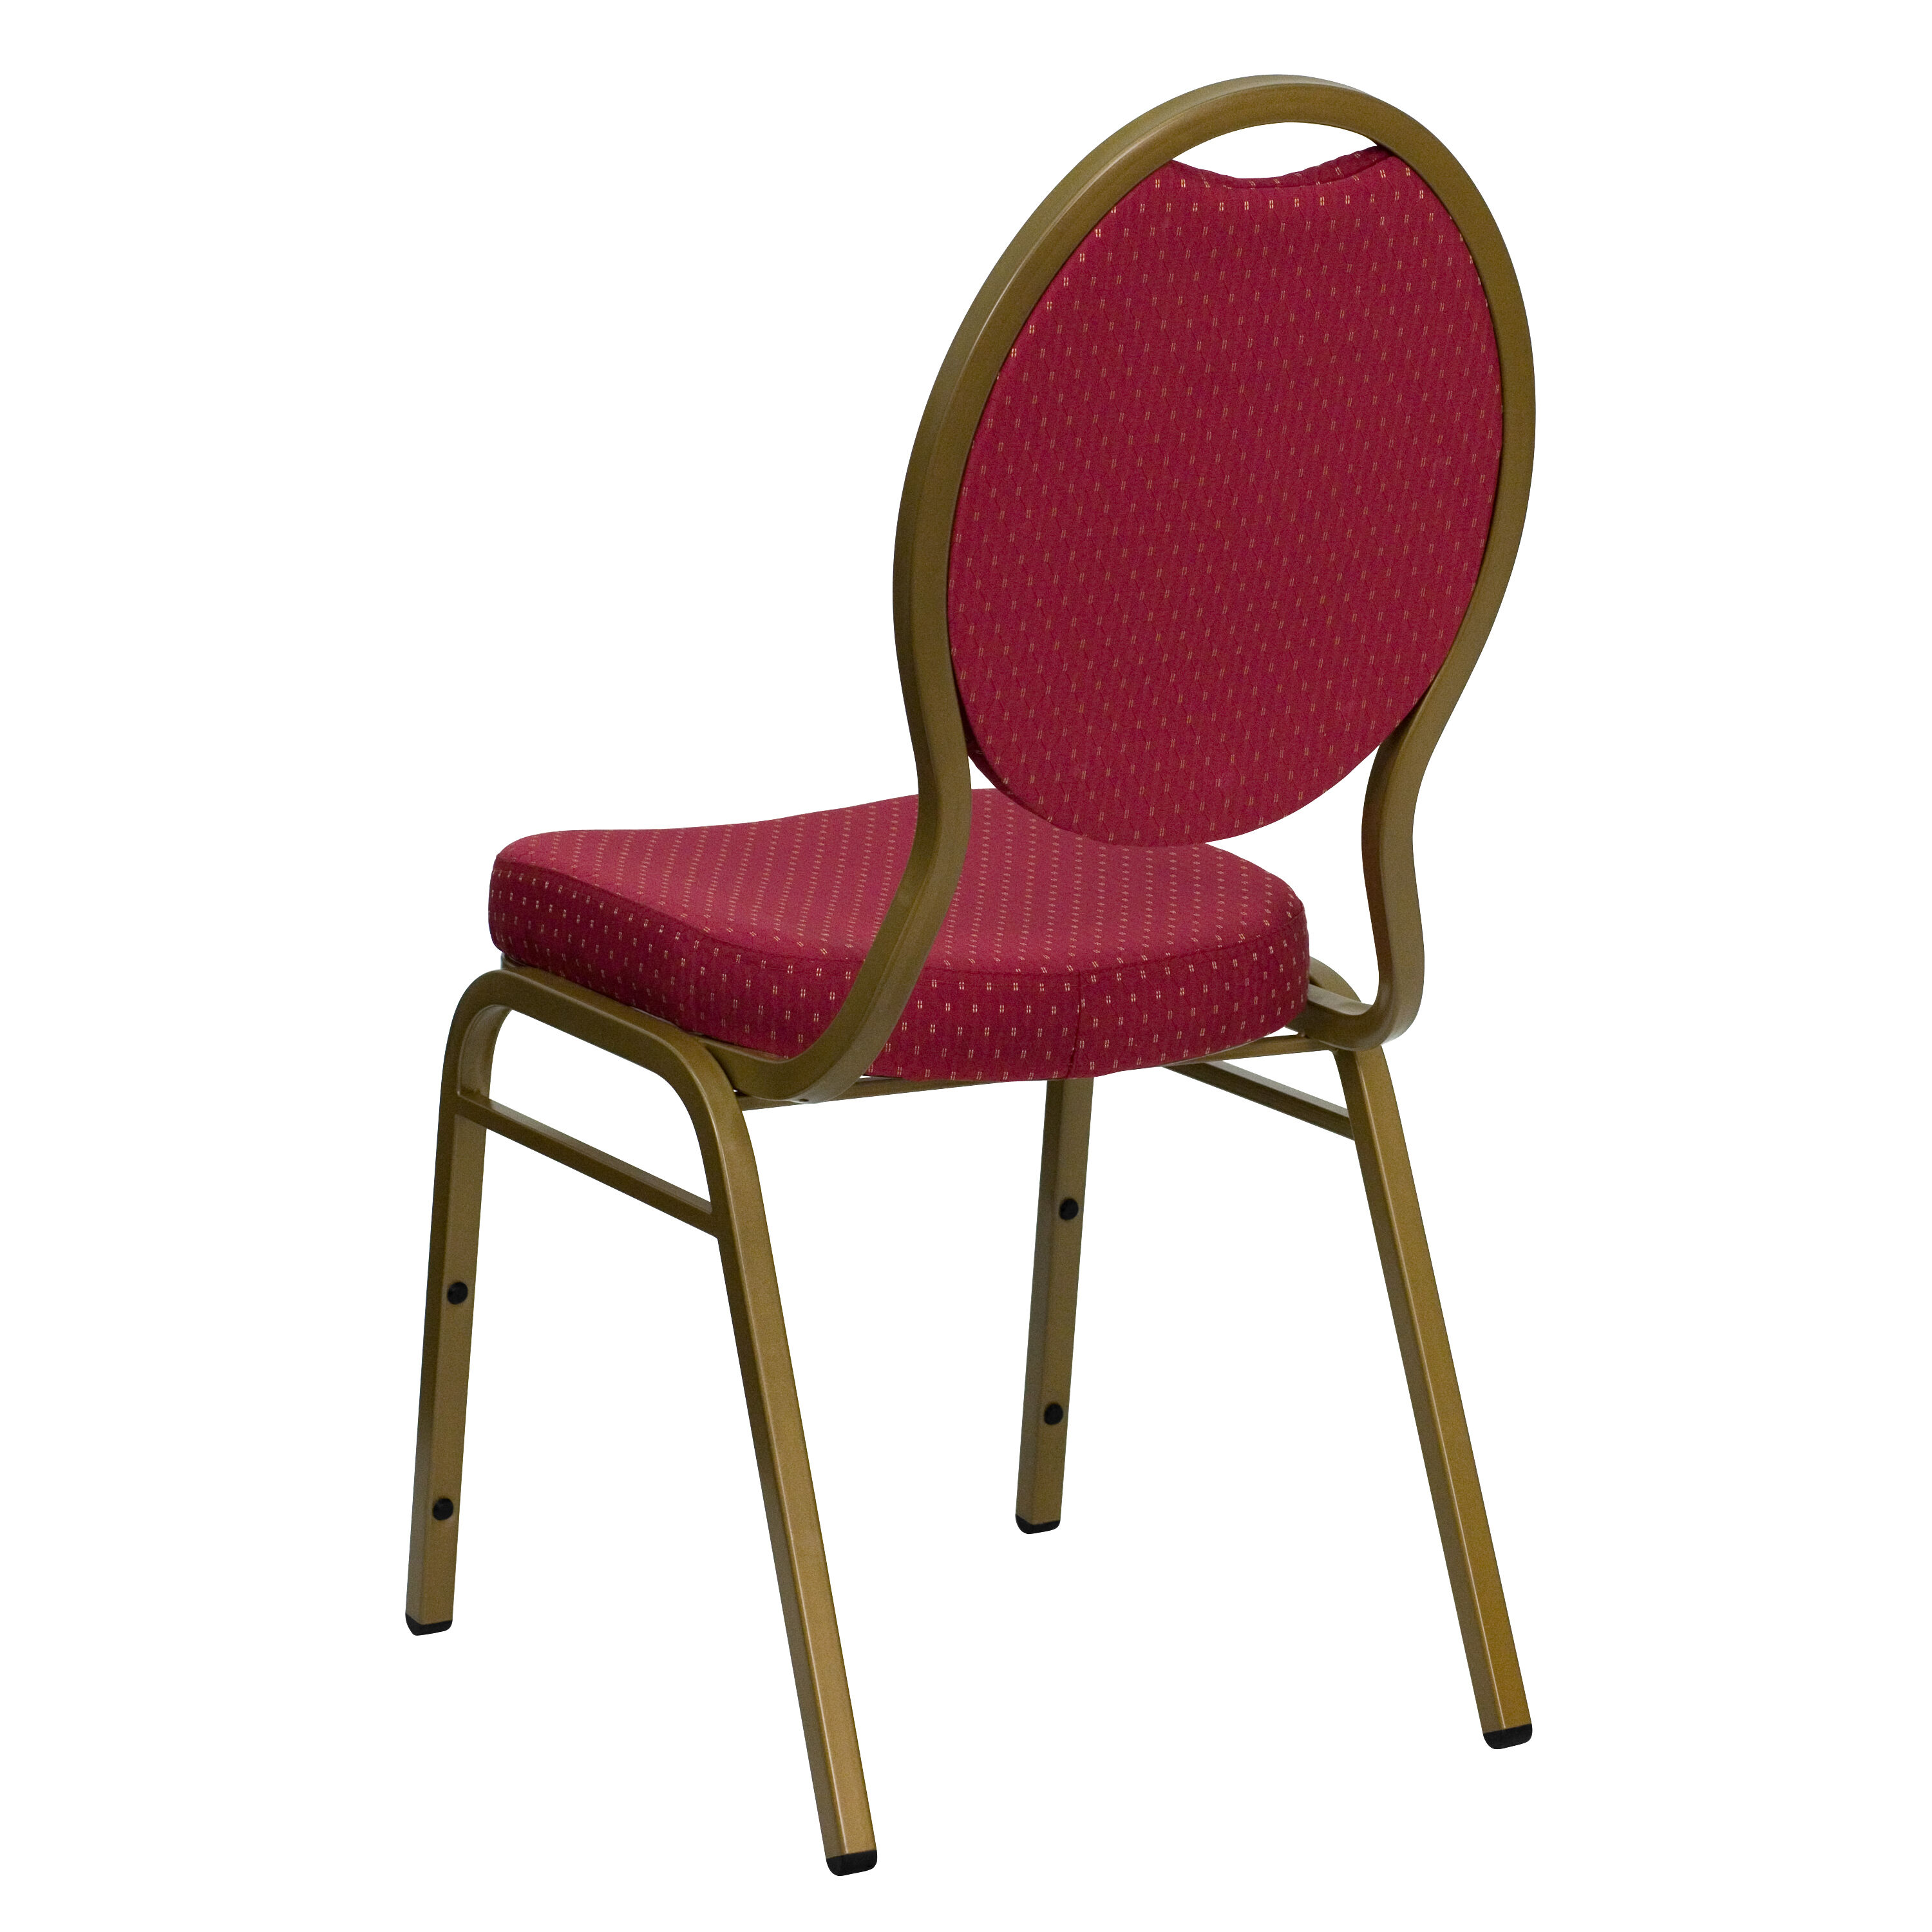 Flash Furniture HERCULES Series Teardrop Back Stacking Banquet Chair In  Burgundy Patterned Fabric   Gold Frame FD C04 ALLGOLD 2804 GG |  BestChiavariChairs. ...